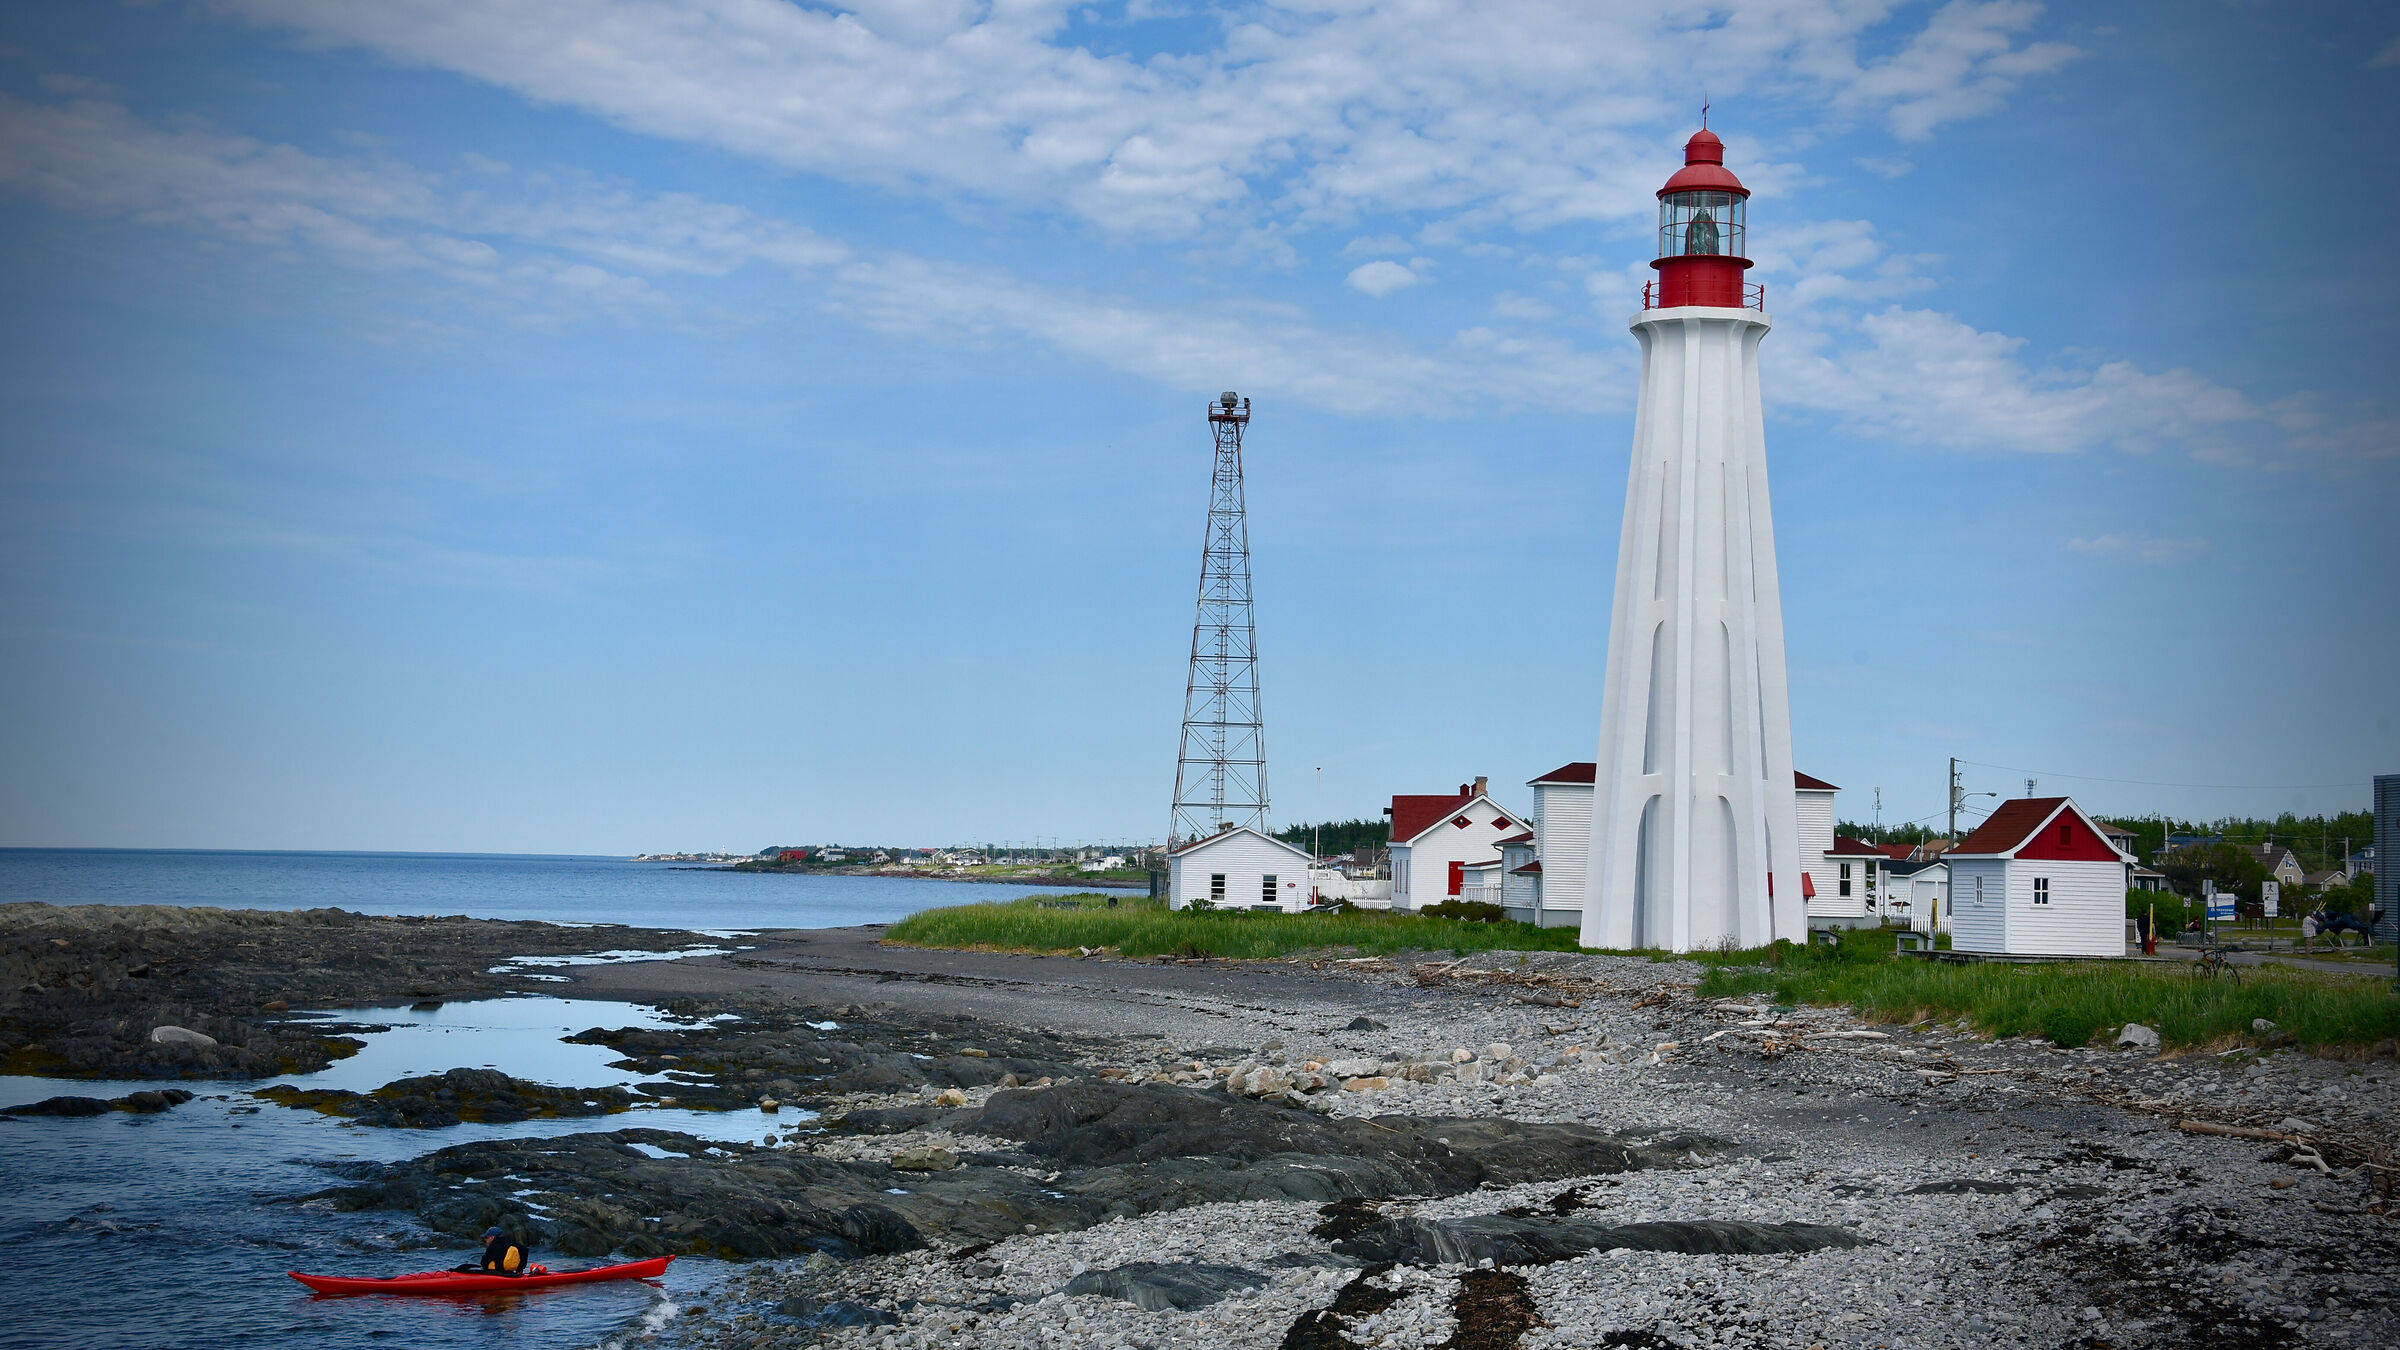 Lower St. Lawrence Landscape in Quebec-2 week vacation...